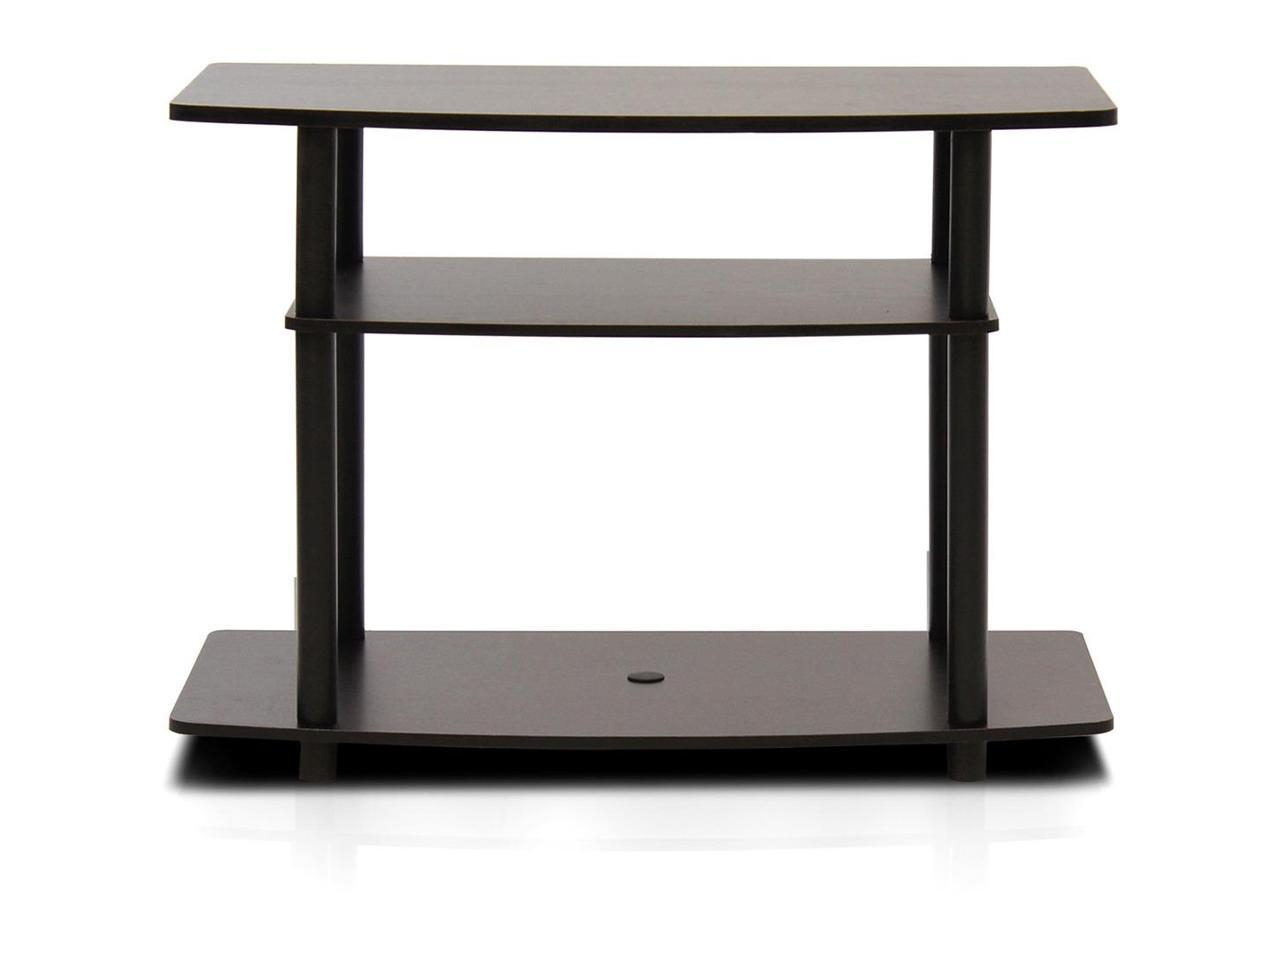 Furinno 13192dbr/bk Turn N Tube No Tools 3 Tier Tv Stands In Favorite Furinno Turn N Tube No Tool 3 Tier Entertainment Tv Stands (View 8 of 10)